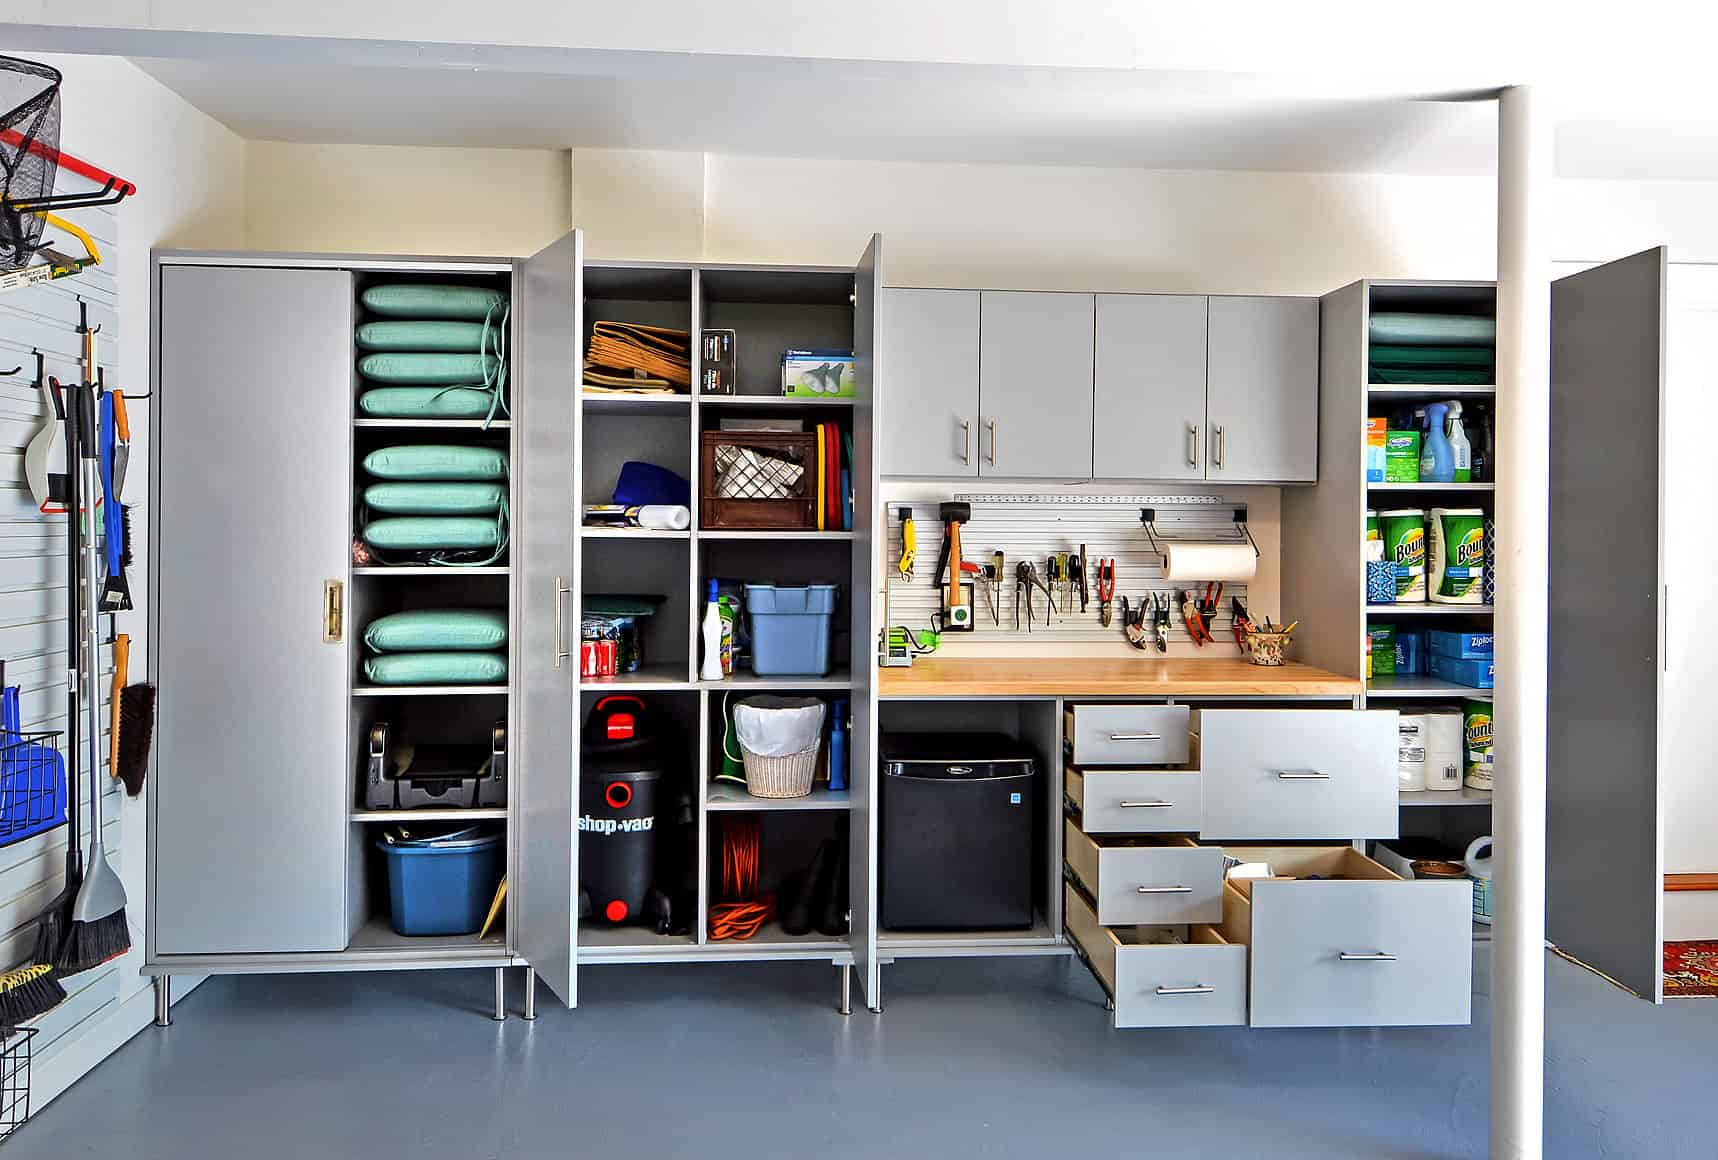 Garage store system with cabinet doors and drawers opened to reveal just how spacious the storage spaces are.